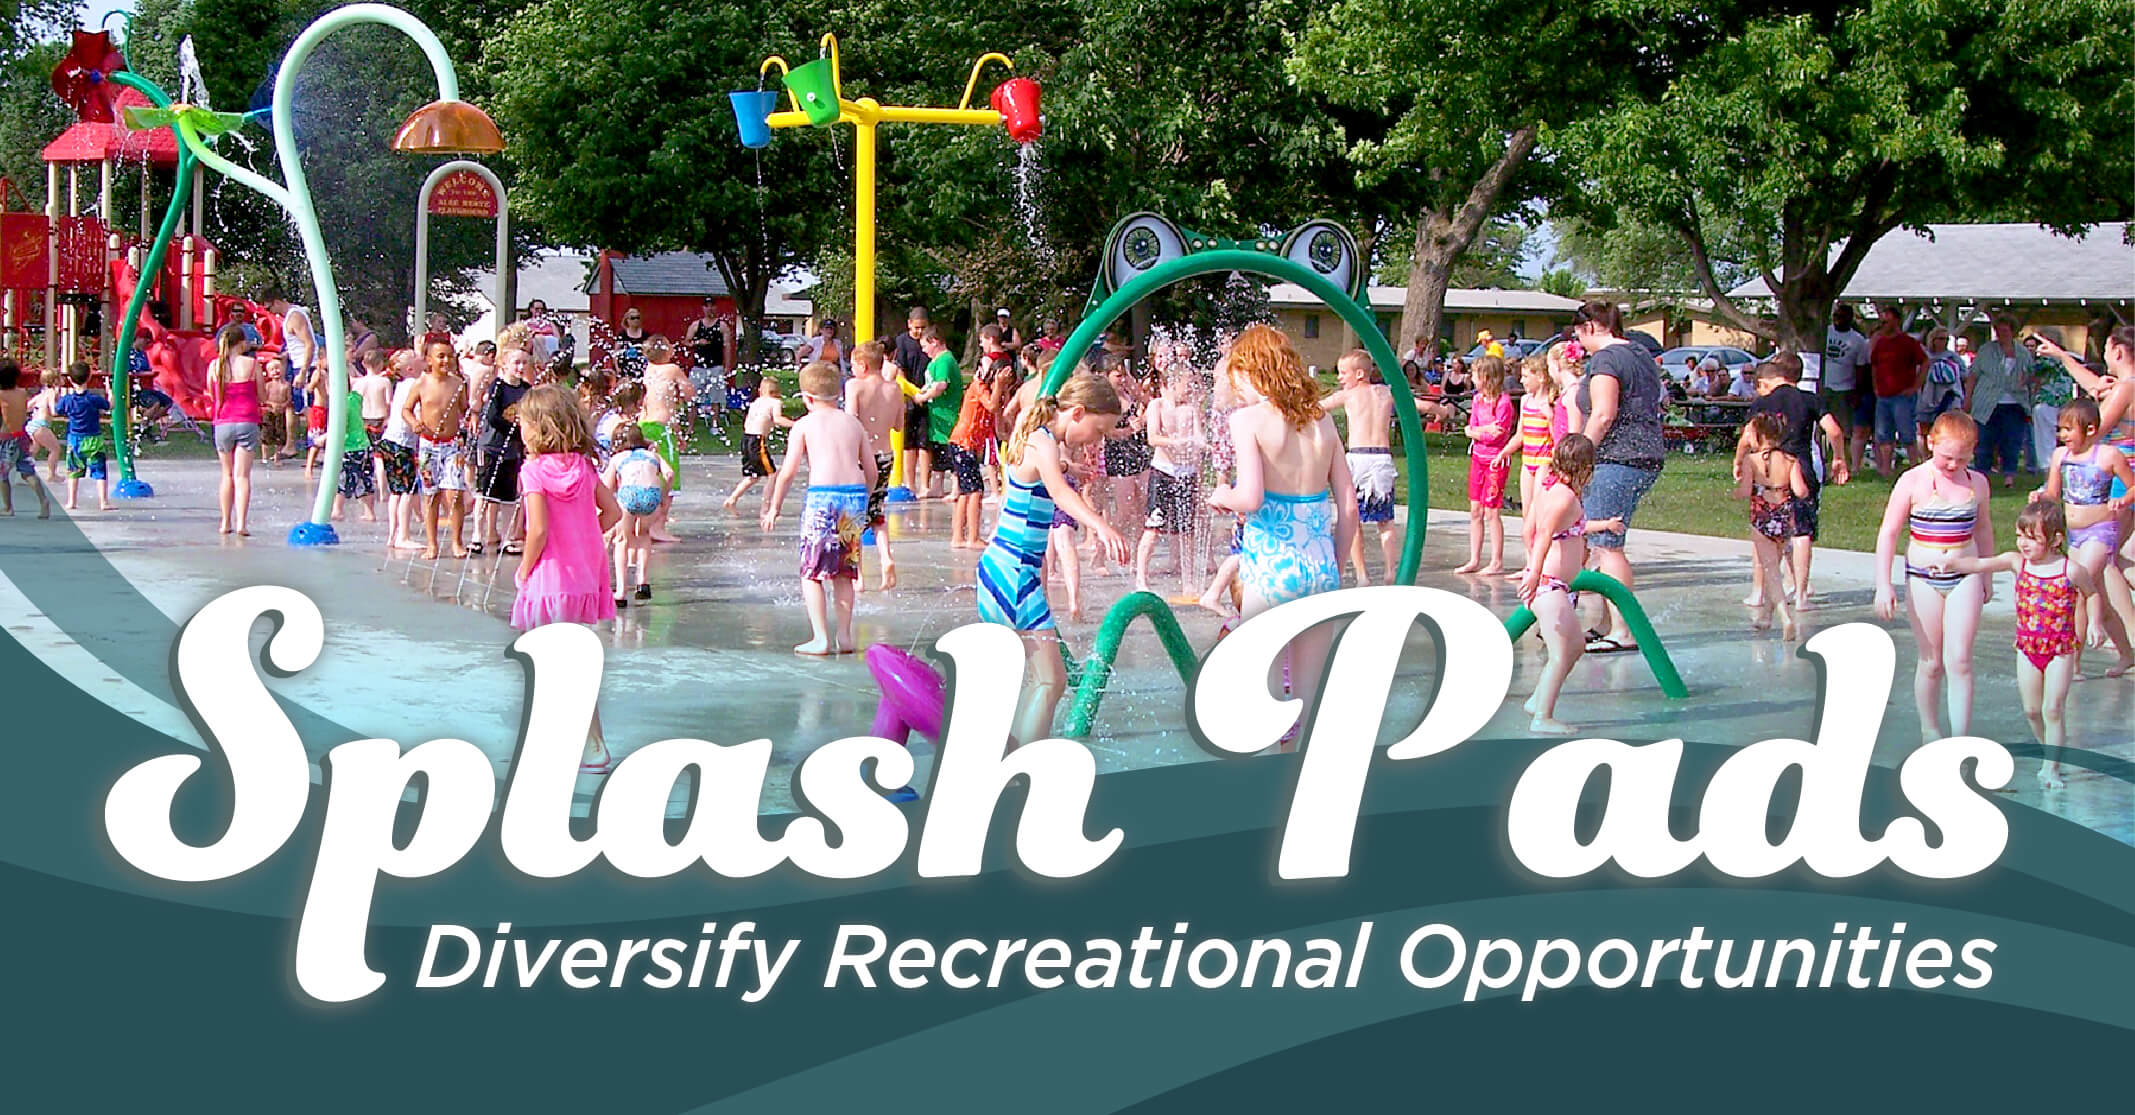 """kids playing on splash pad with the words """"Splash Pads: Diversify Recreational Opportunities"""" superimposed over the image"""